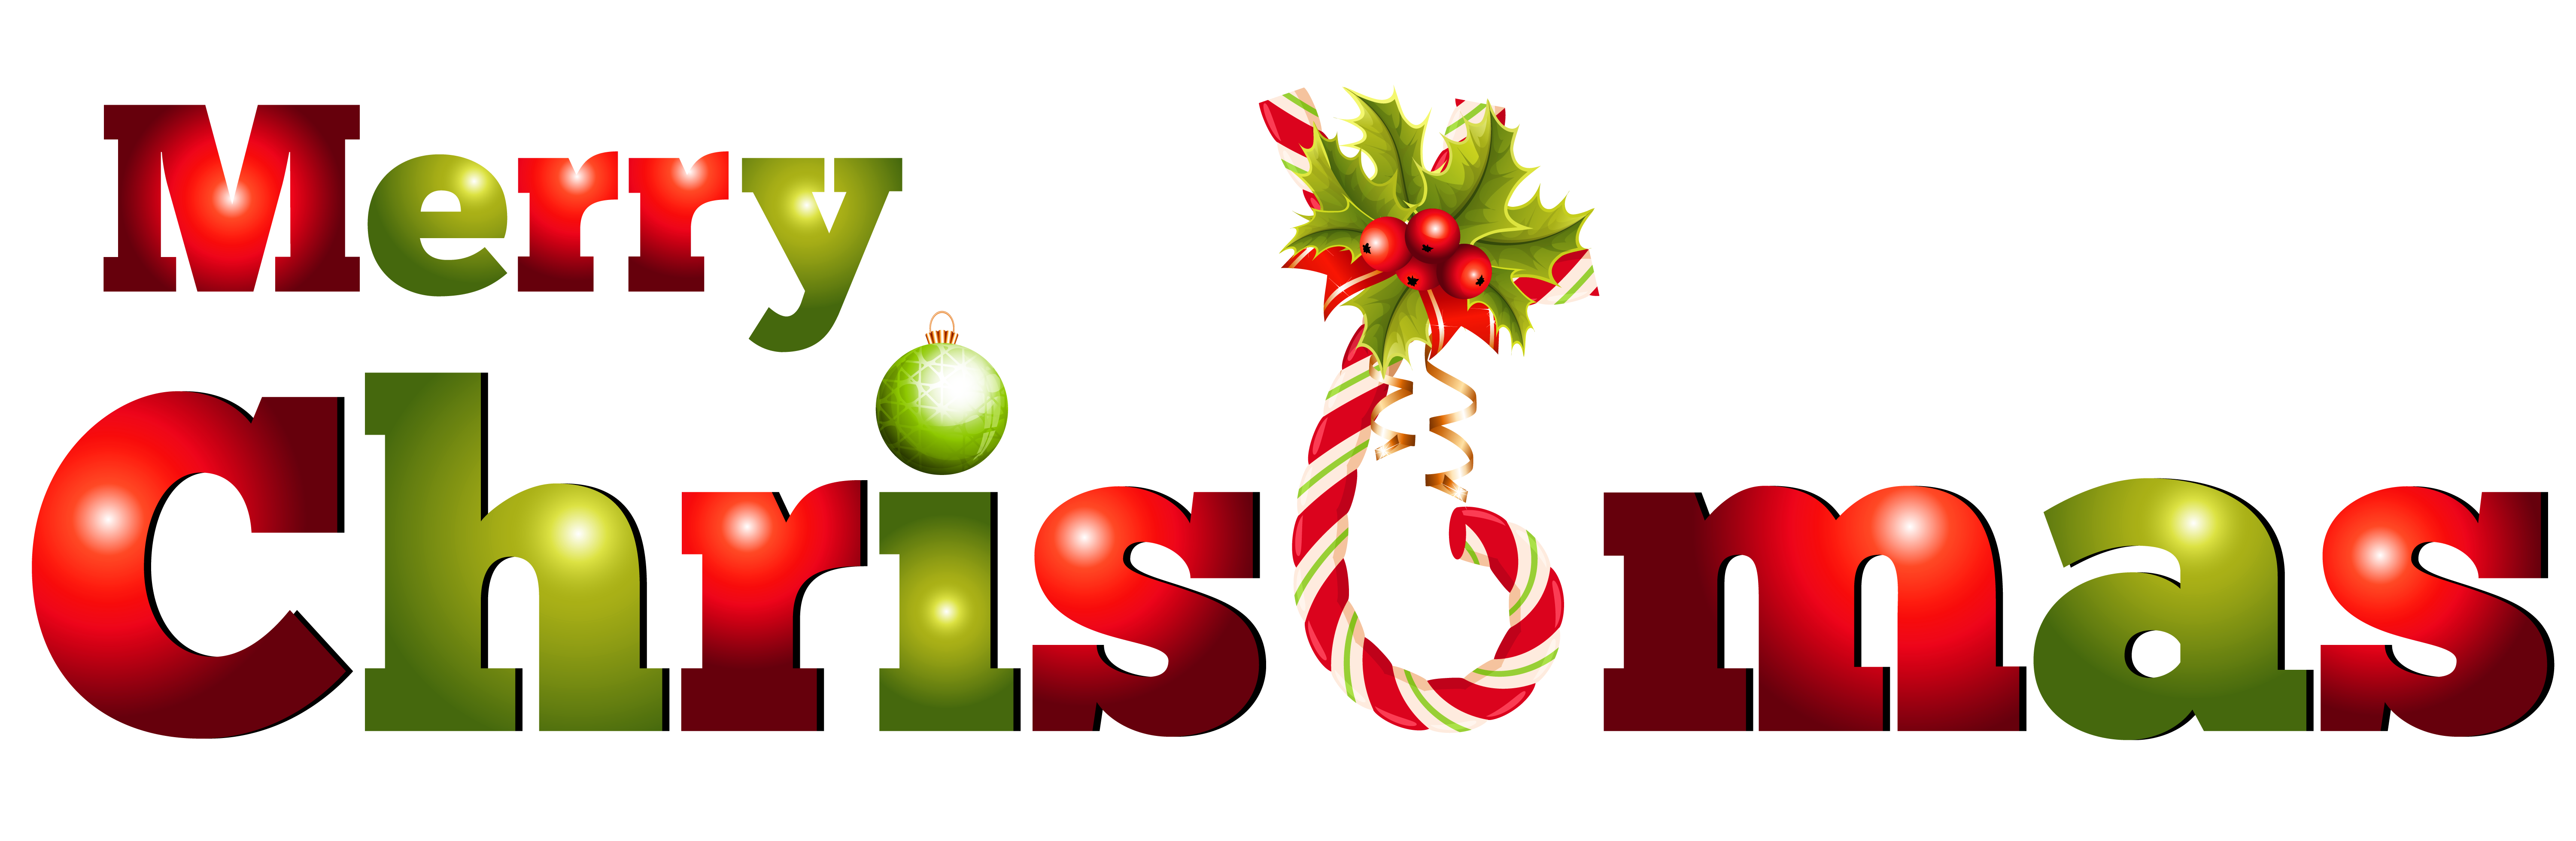 Merry clipart writing. Christmas fantasy novels by